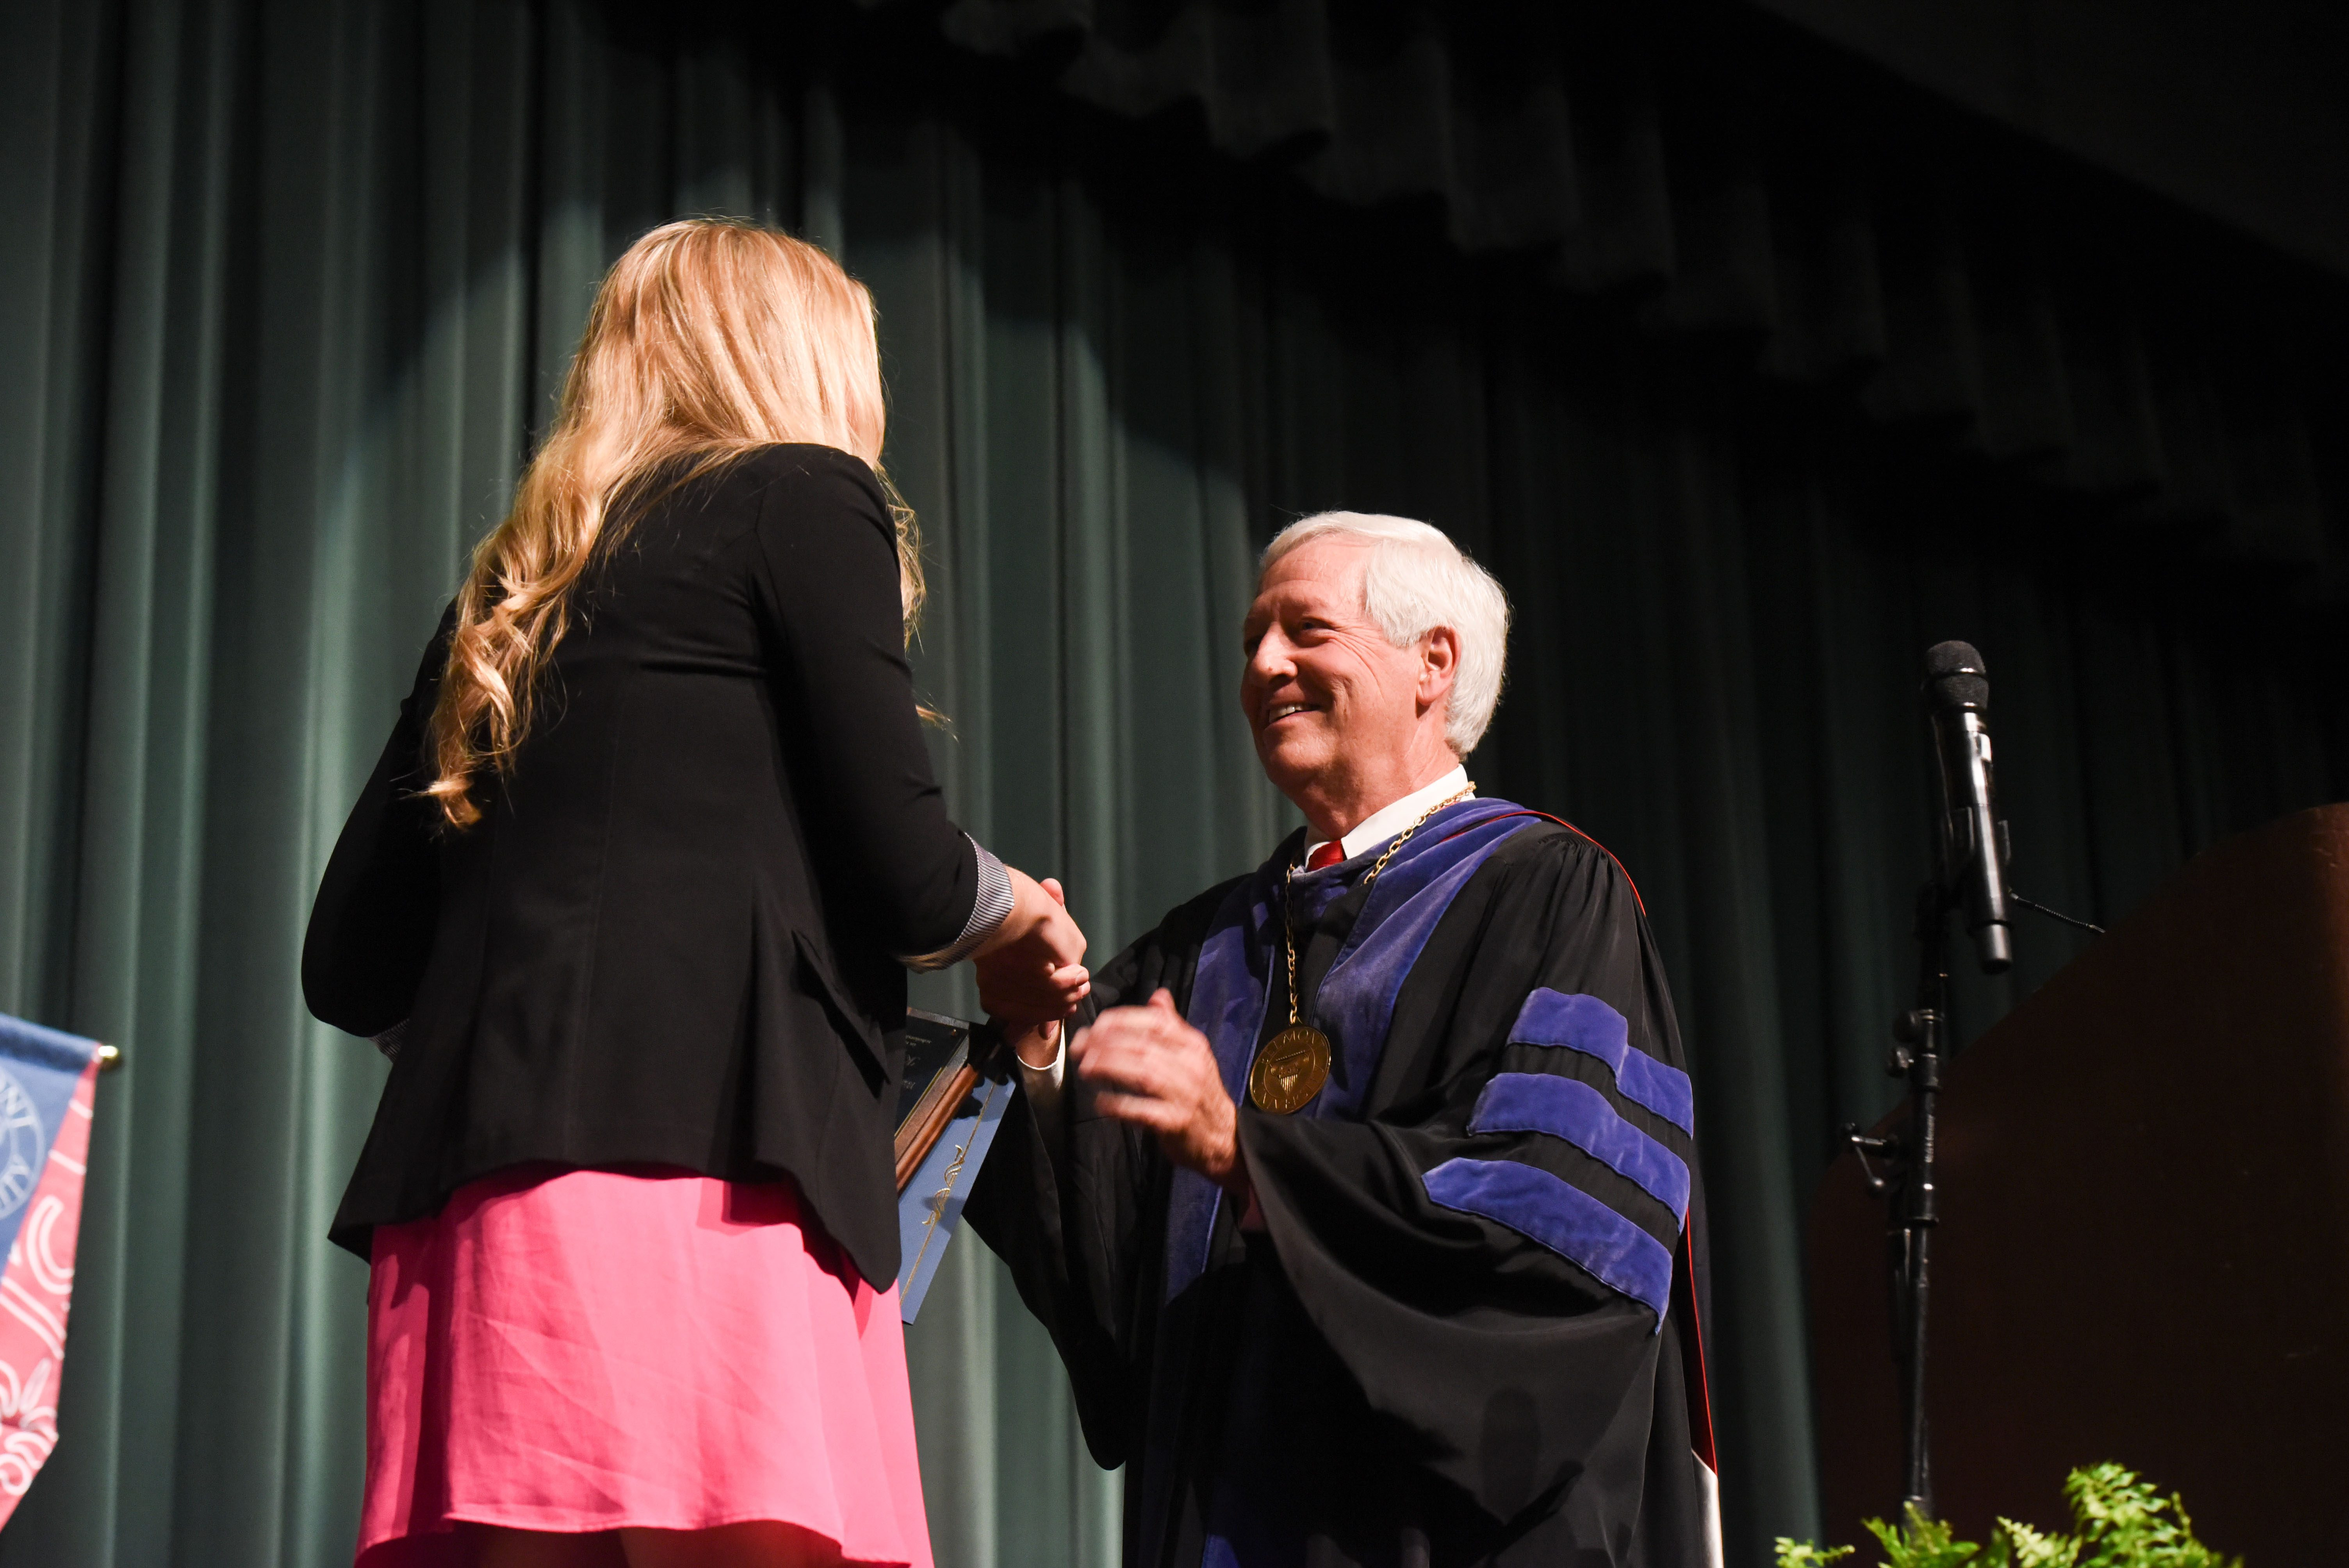 Dr. Fisher presents a student with the Fourth Year Student of the Year Award at the Annual Scholarship and Awards Day